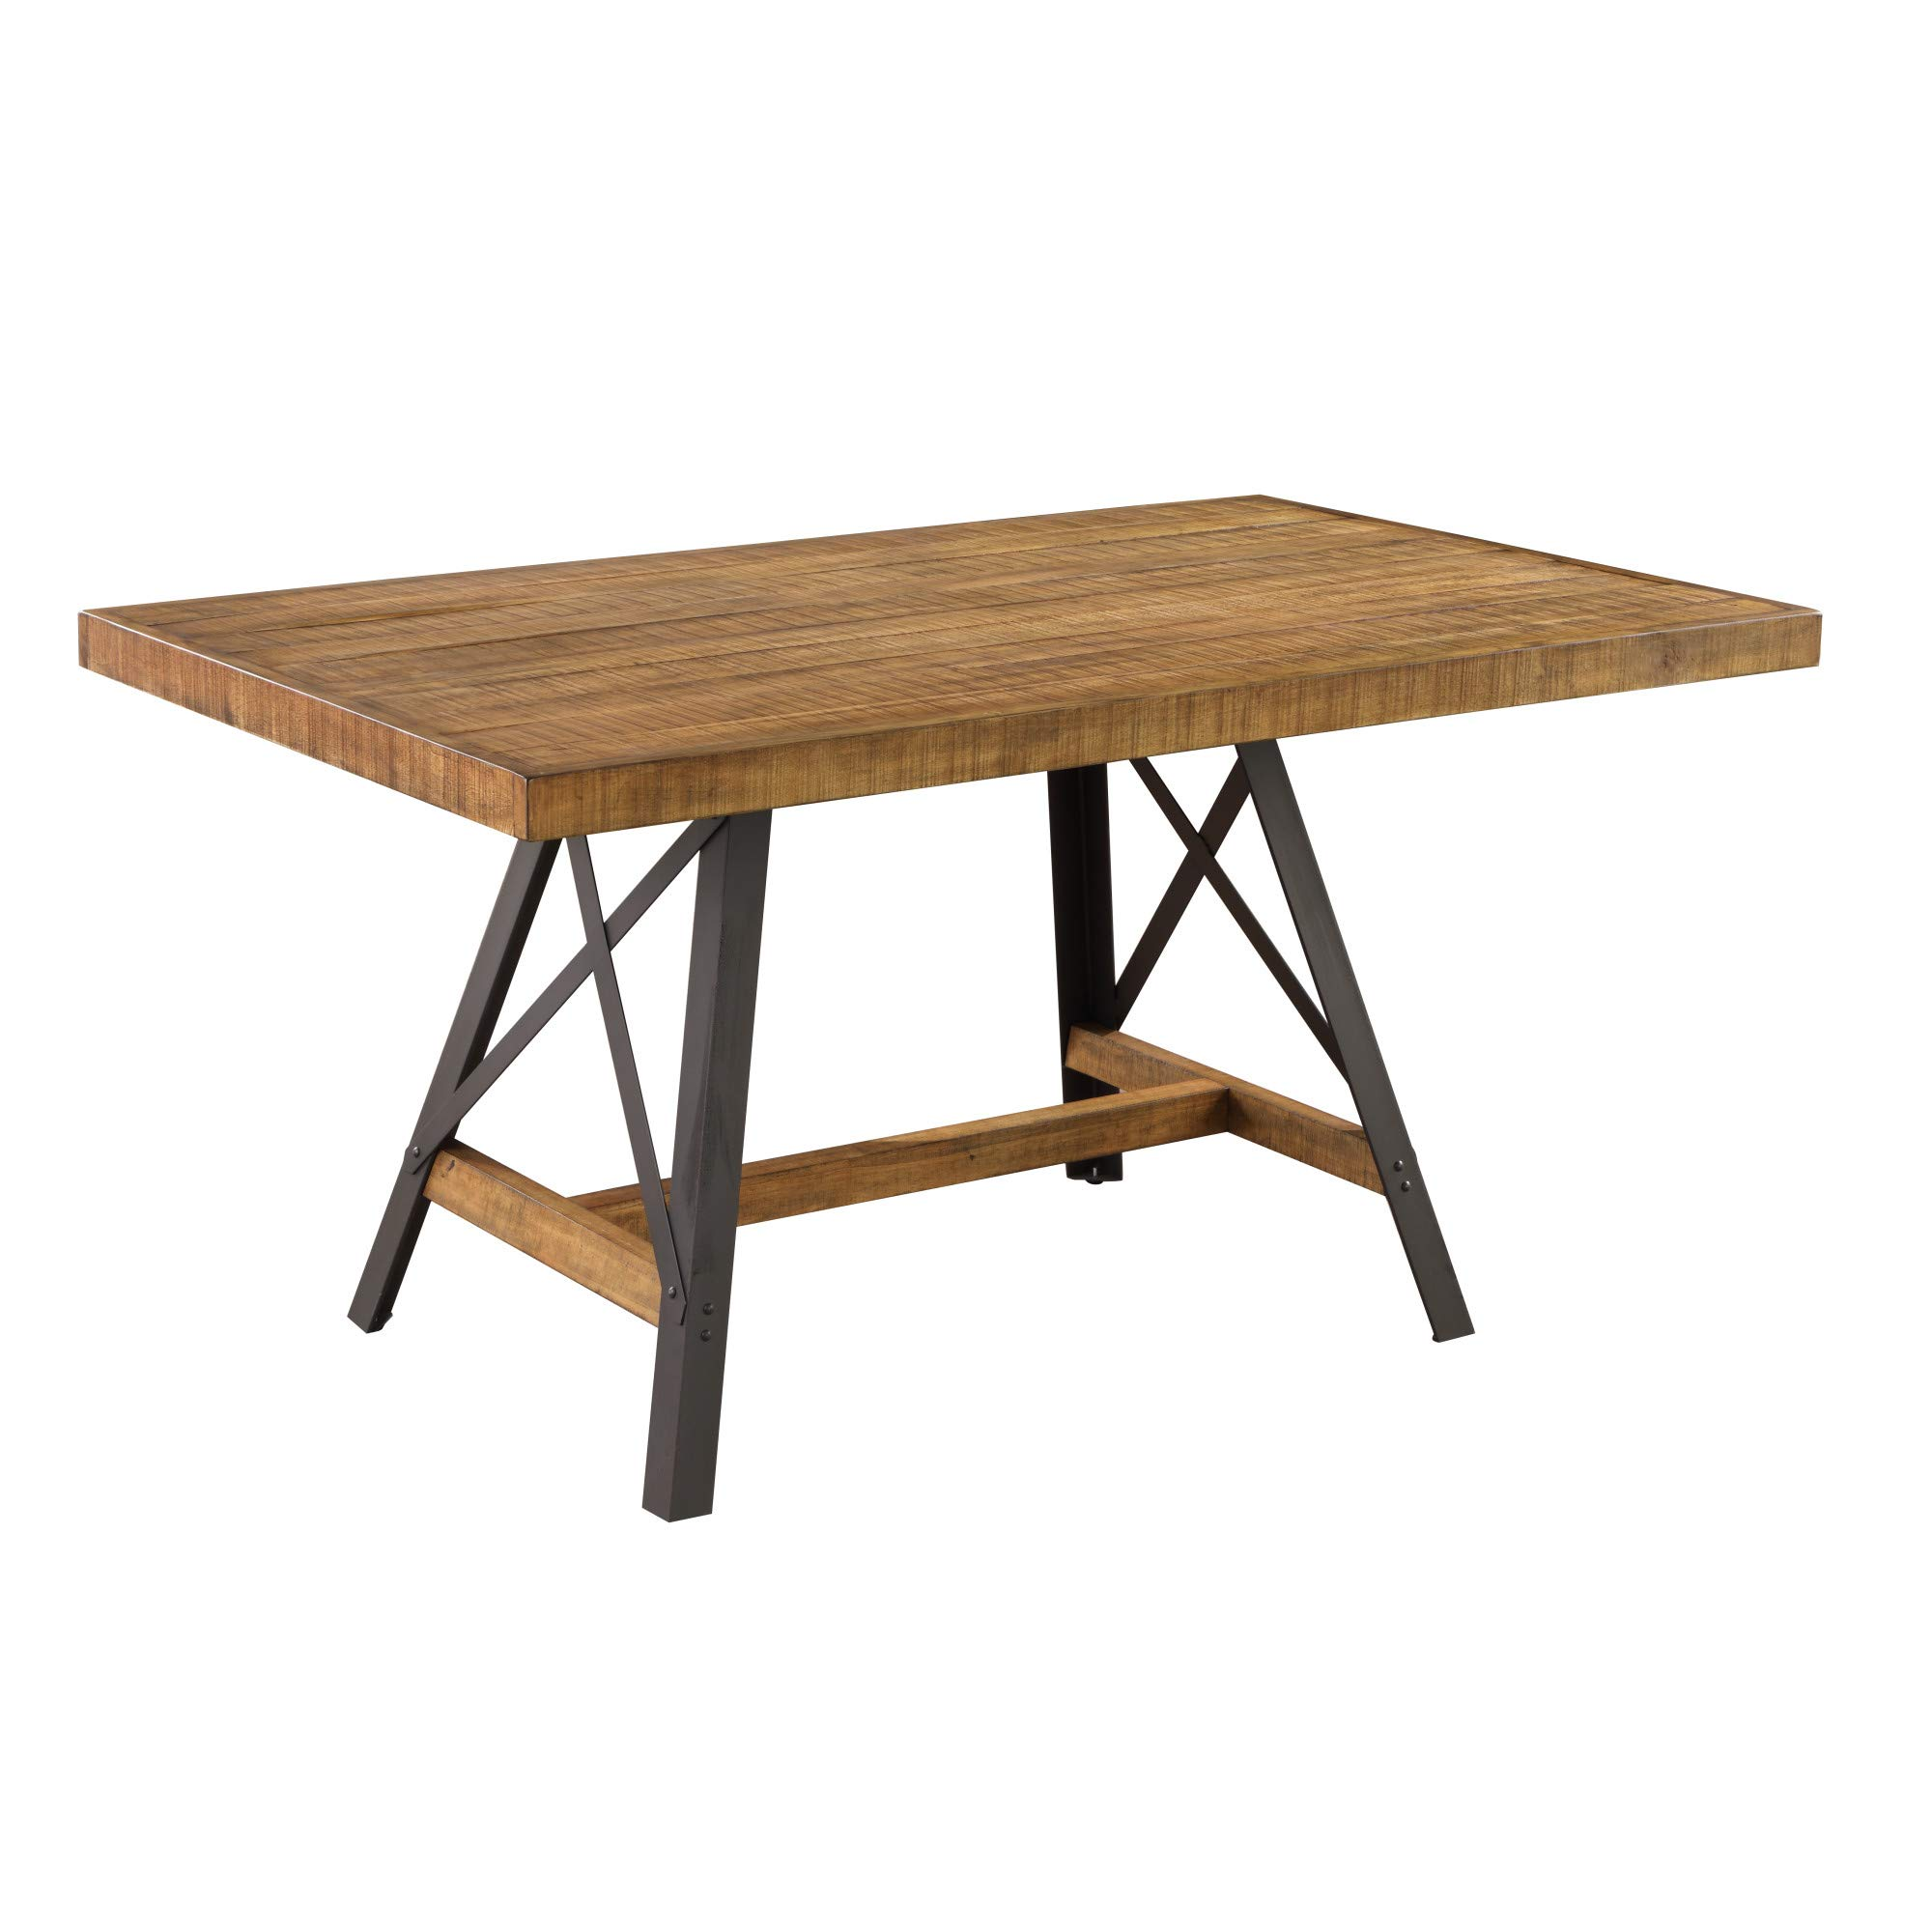 Joey 60'' Dining Table in Gingersnap with Rustic Plank Top And Metal Base, by Artum Hill by Artum Hill